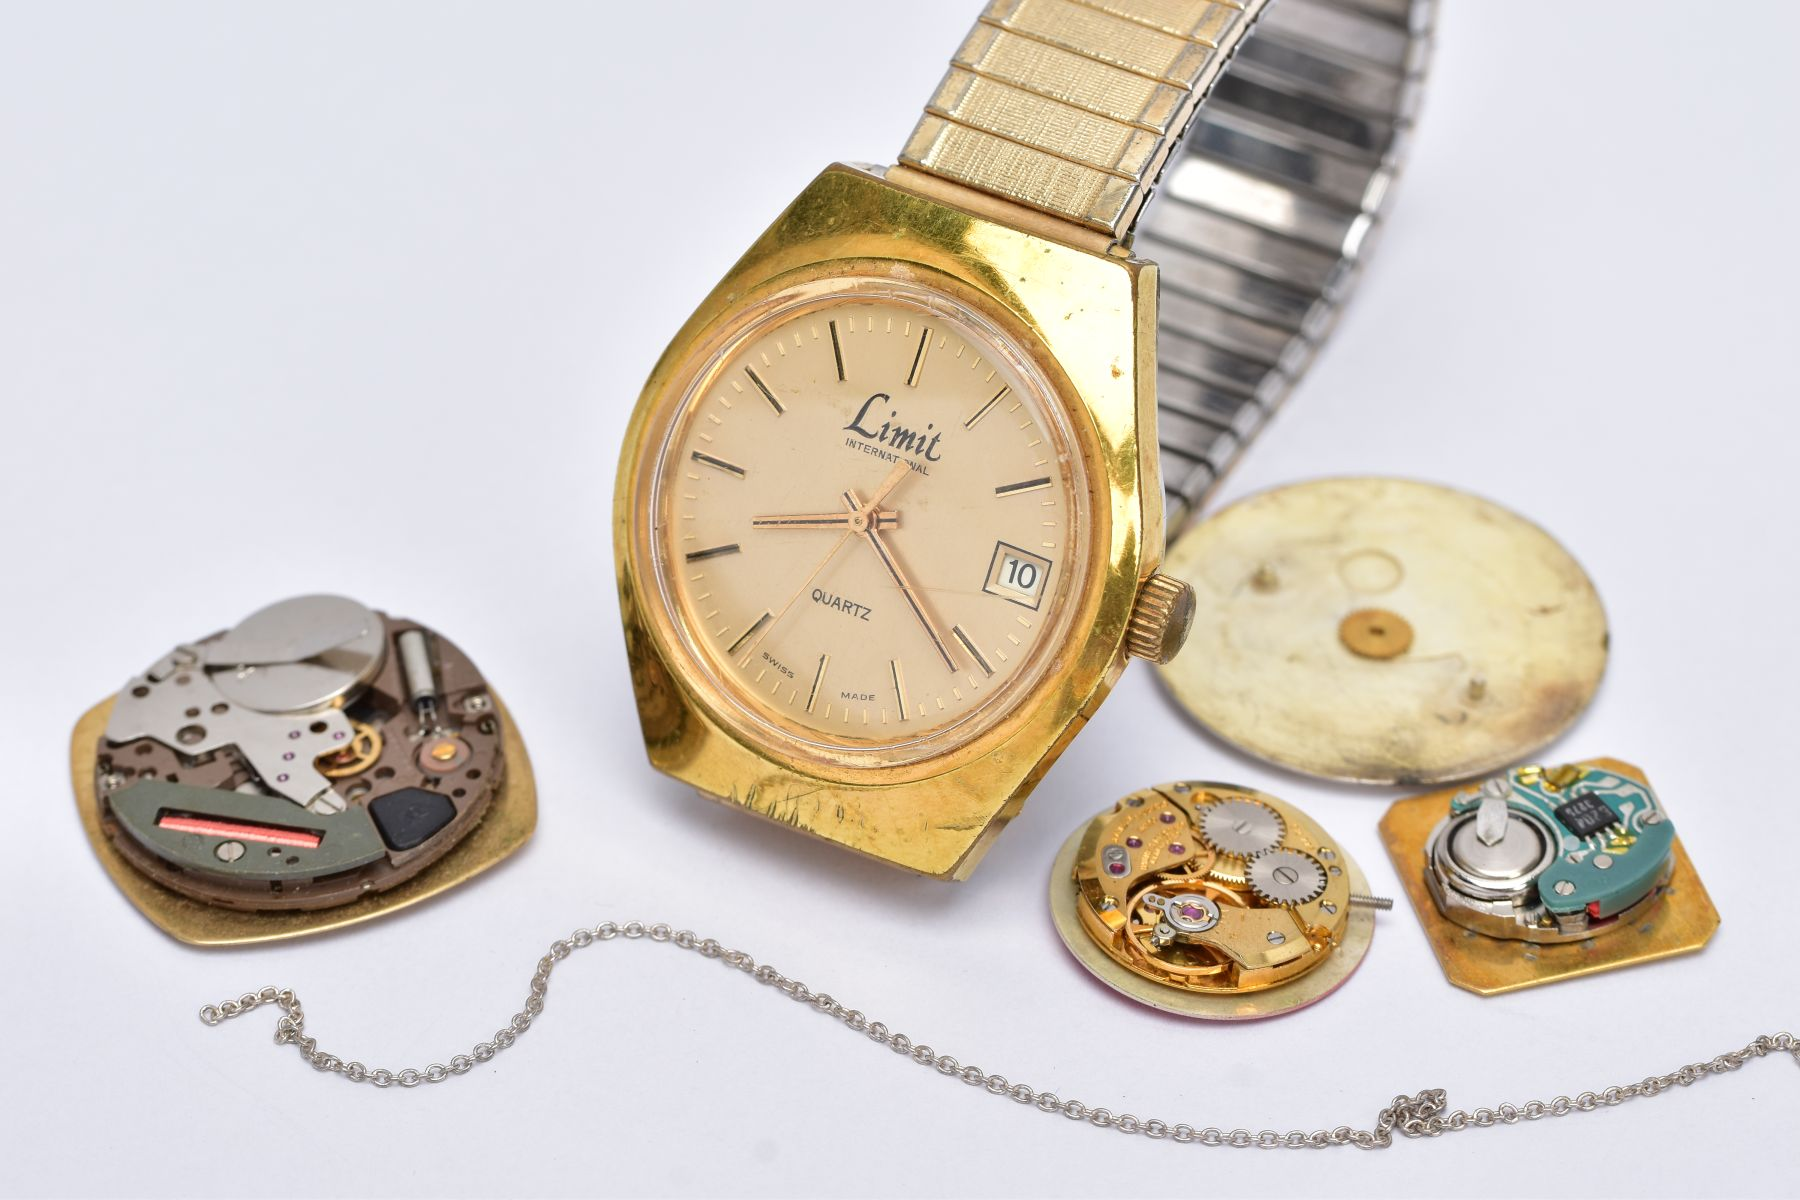 A GENTS 'LIMIT' WRISTWATCH AND WATCH PARTS, the quartz 'Limit' wristwatch, round gold dial signed ' - Image 4 of 7